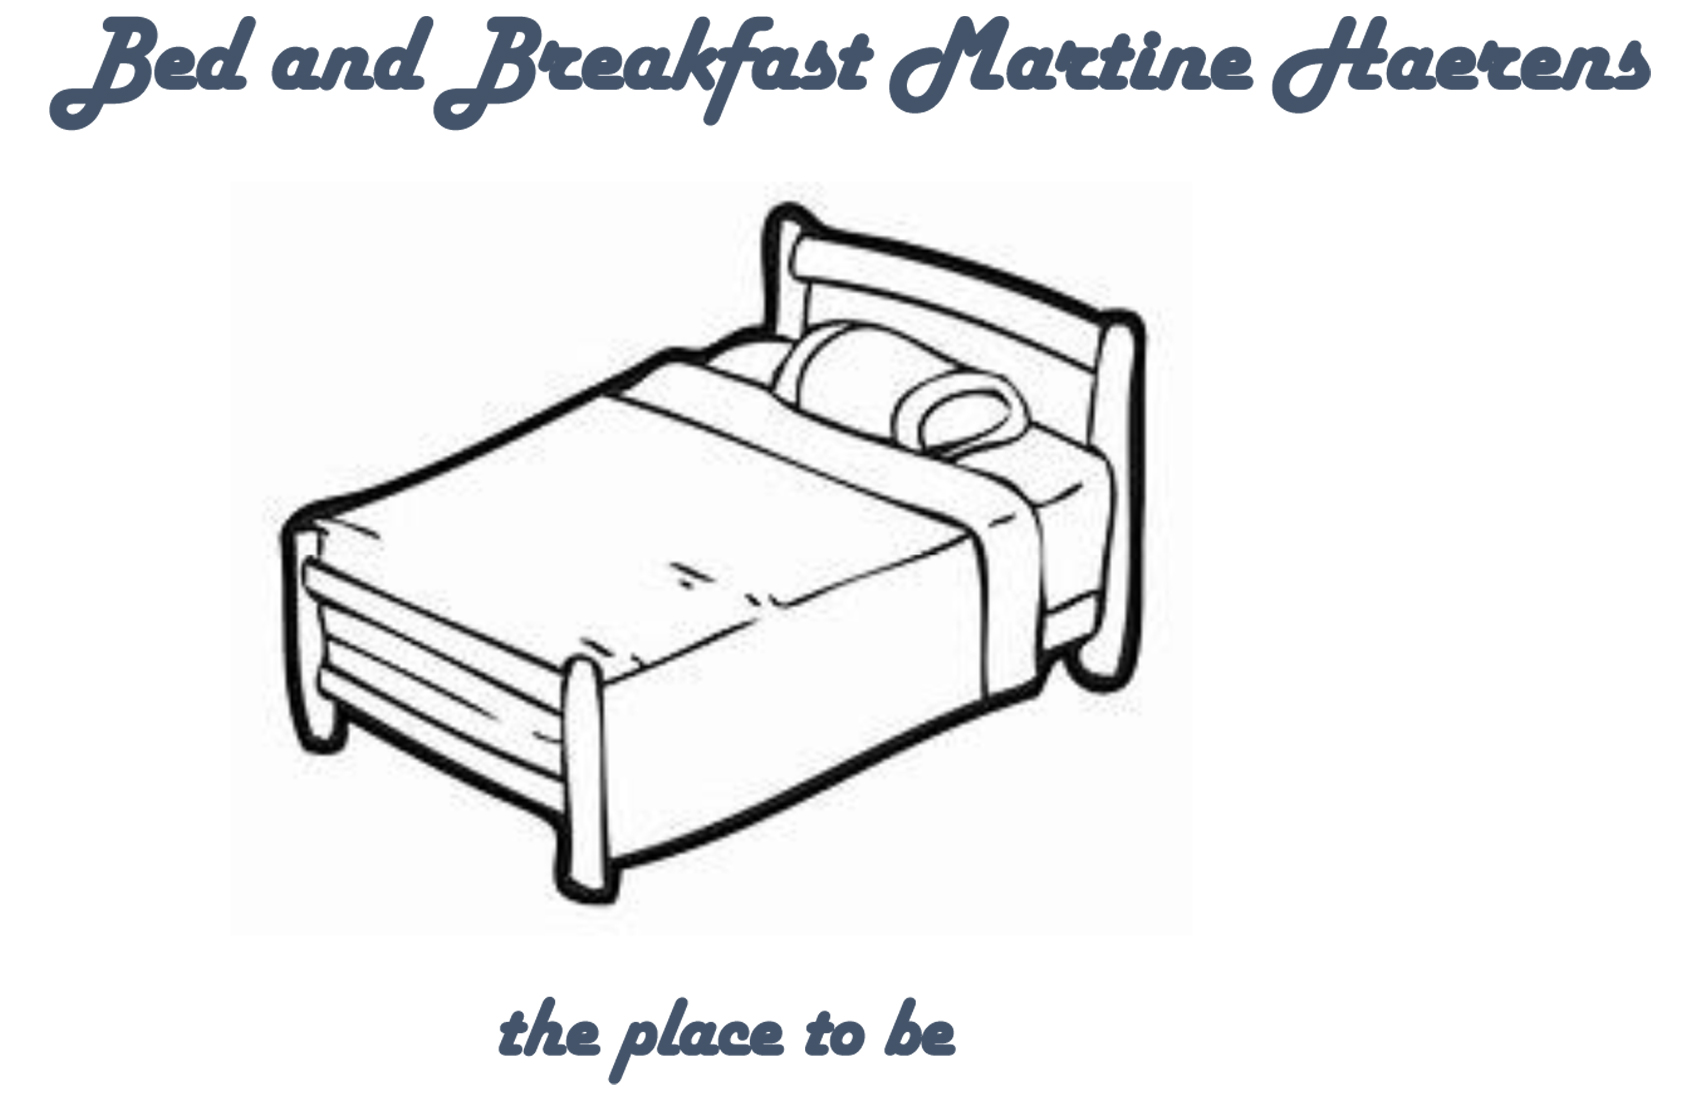 bed and breakfast Martine Haerens